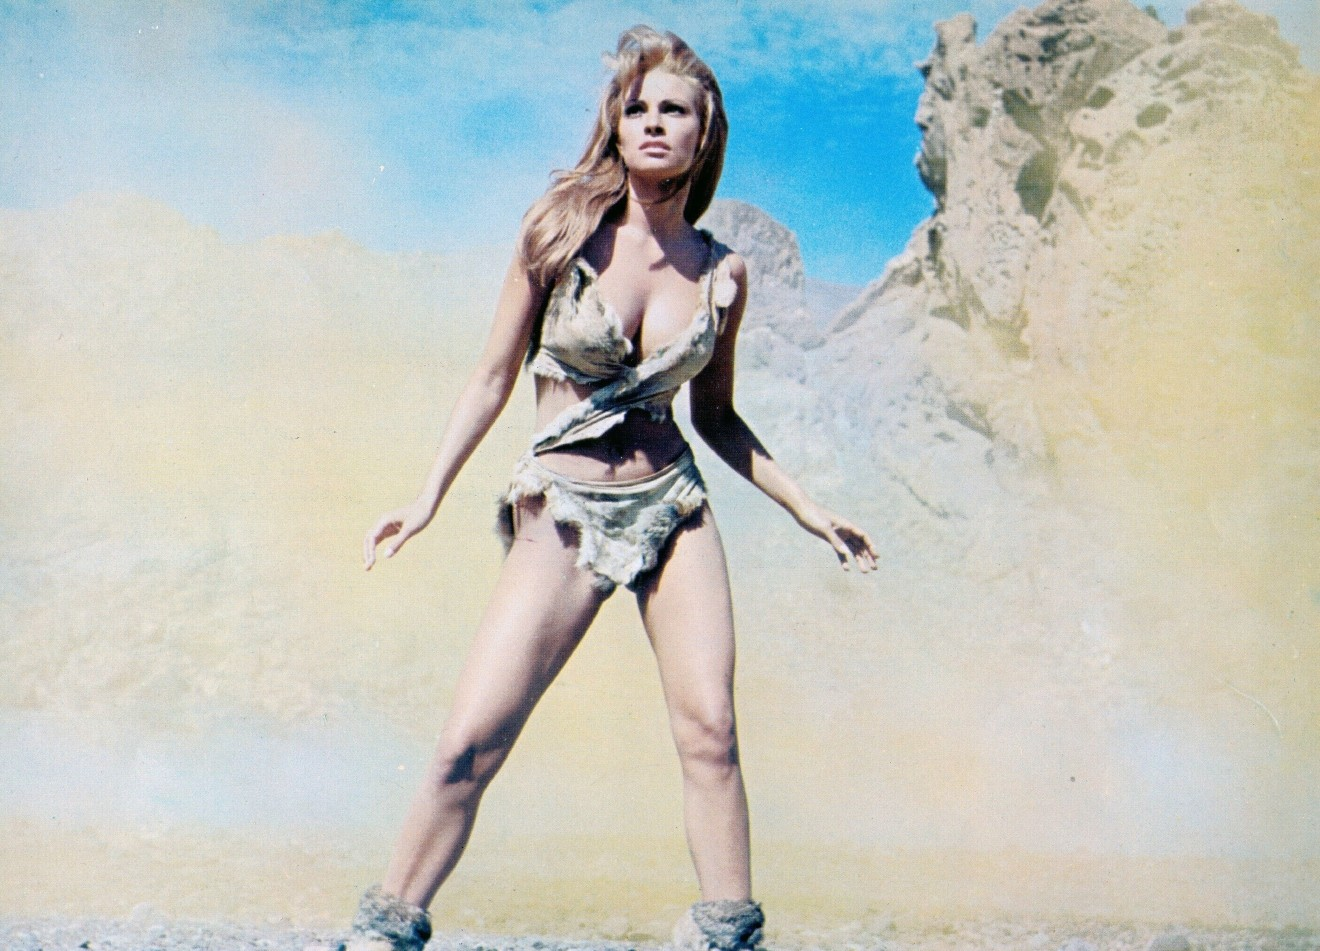 One Million Years B.C.: Raquel Welch in the still that launched her career.